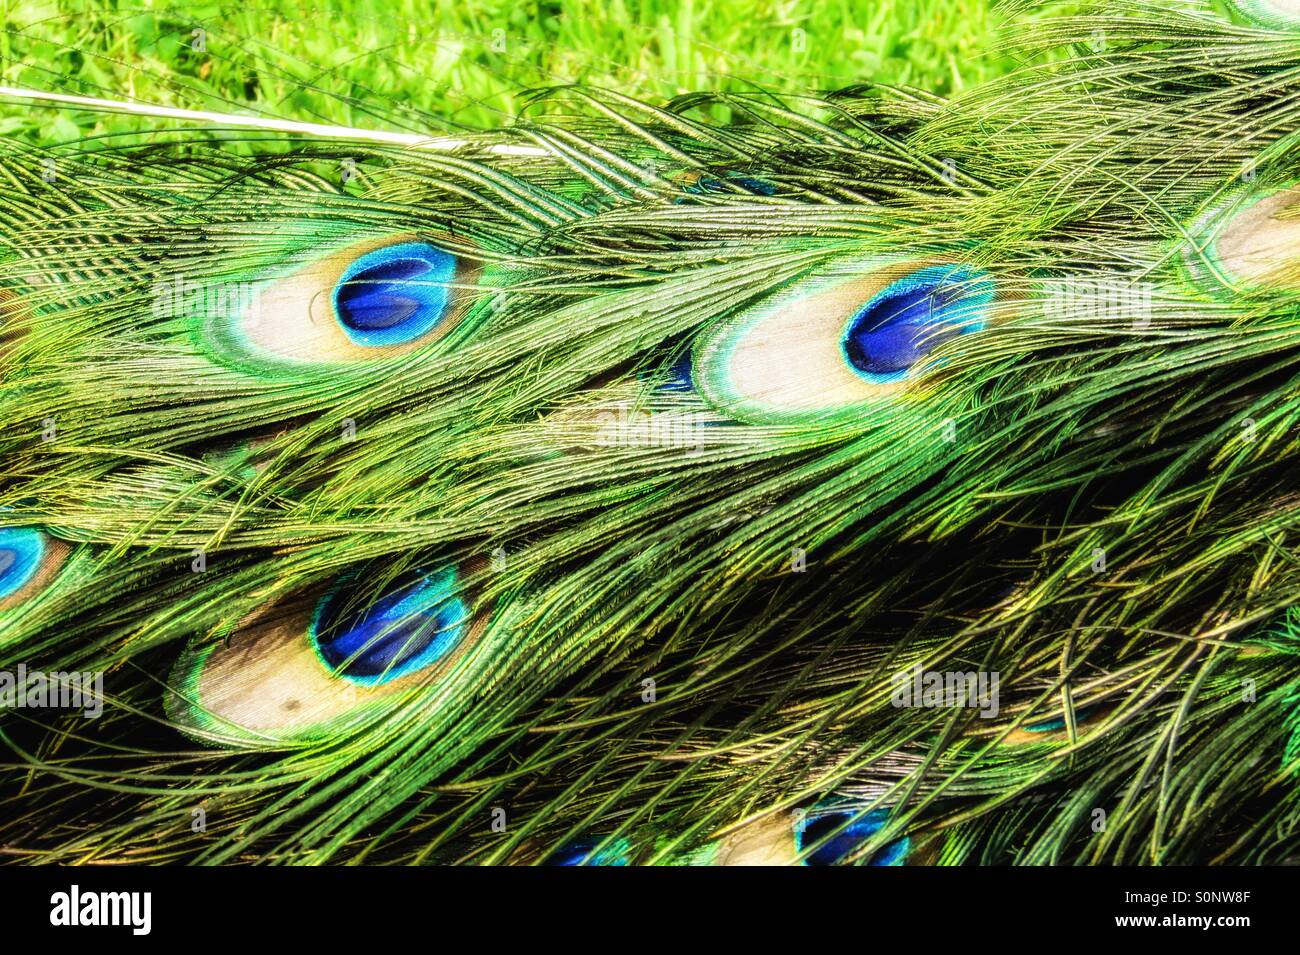 Peacock feathers - Stock Image